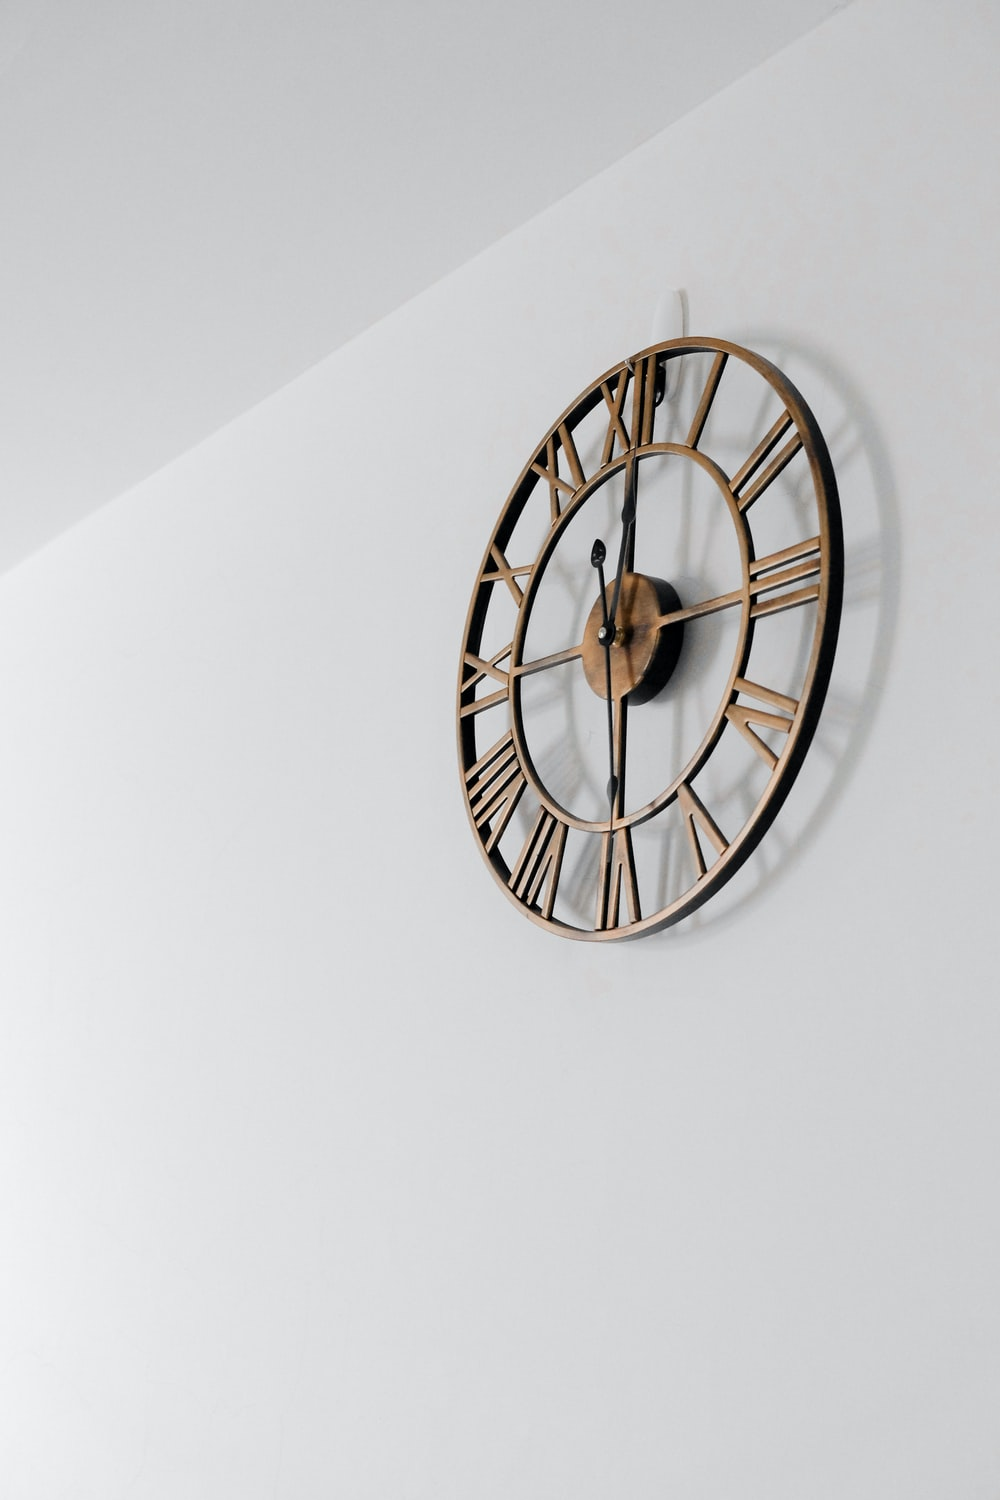 gold round wall clock on white painted wall